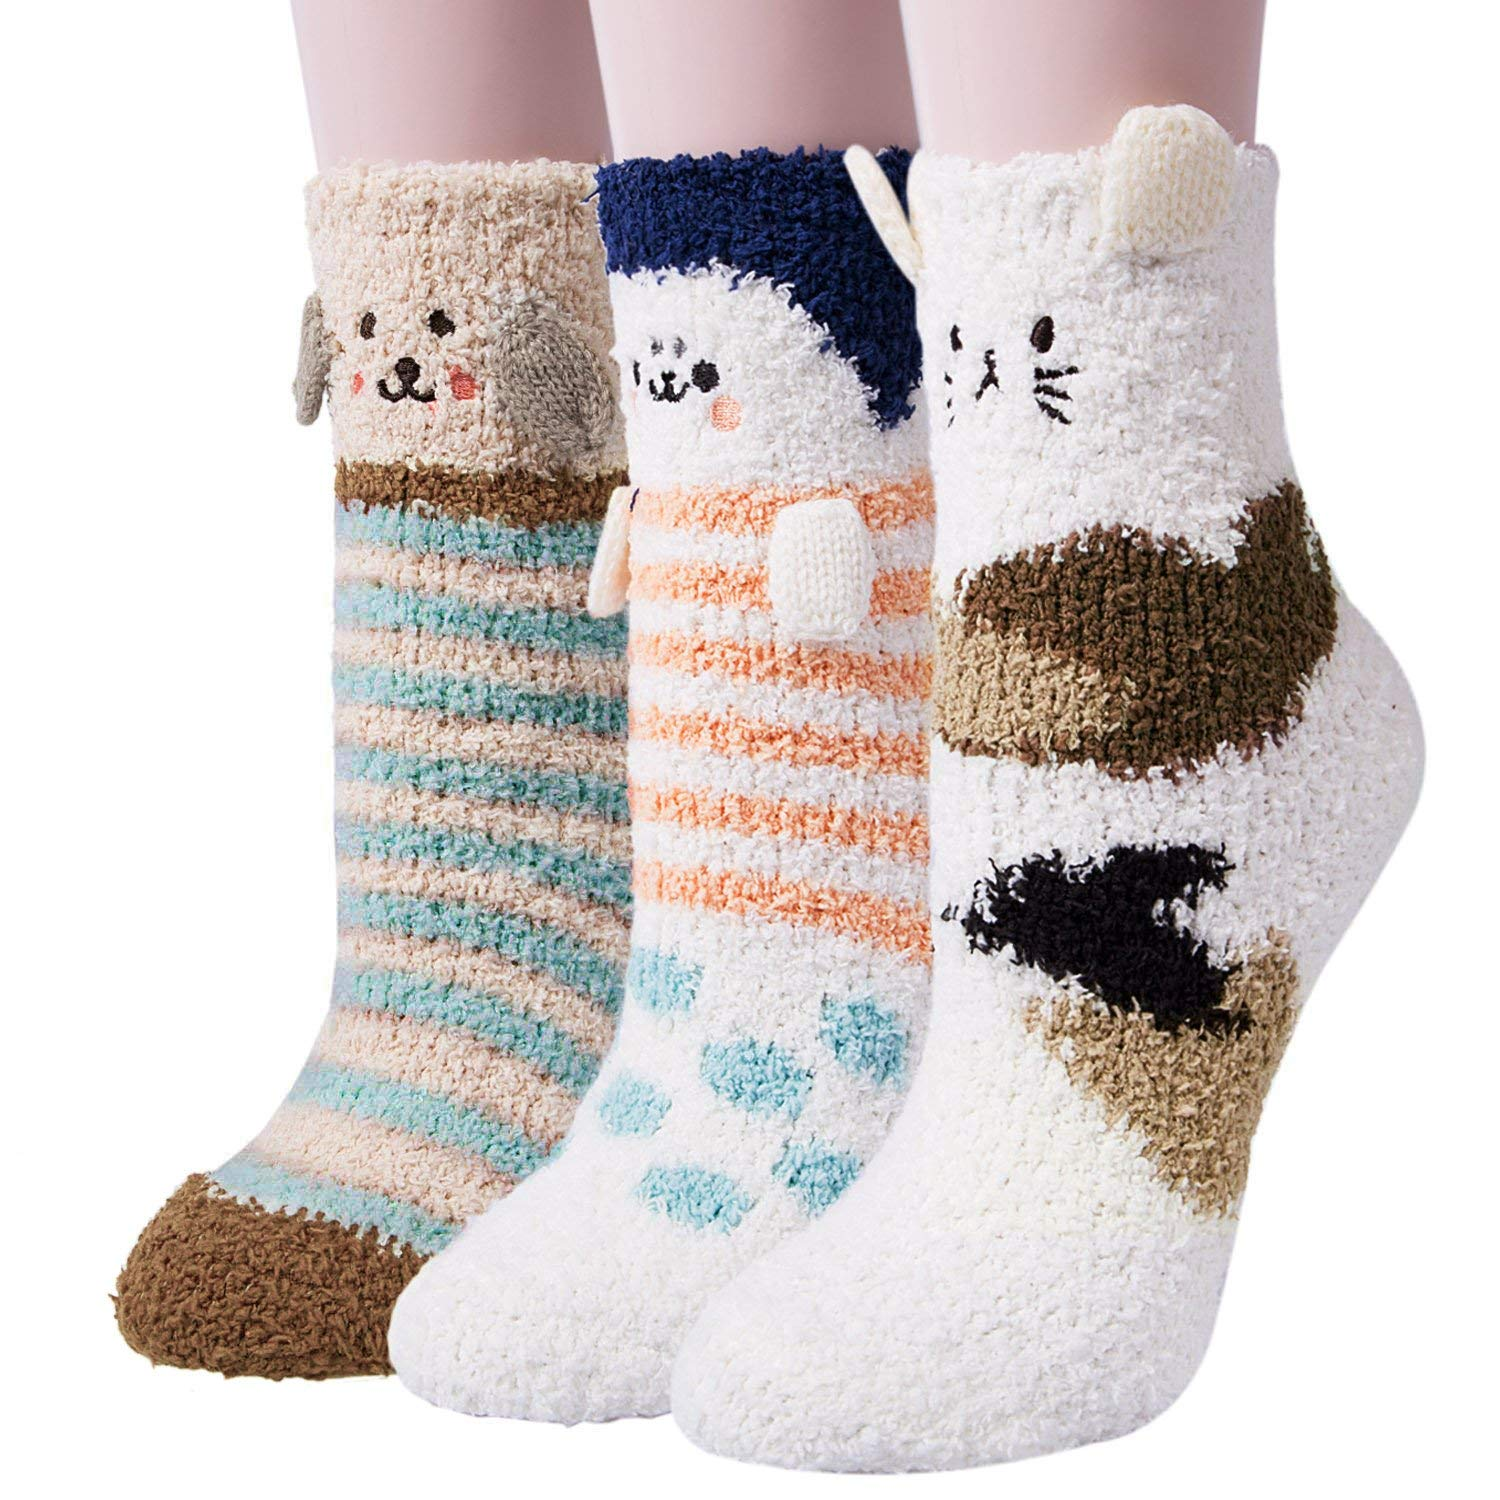 3 Pairs Womens Fuzzy Socks Winter Warm Fluffy Soft Slipper Home Sleeping